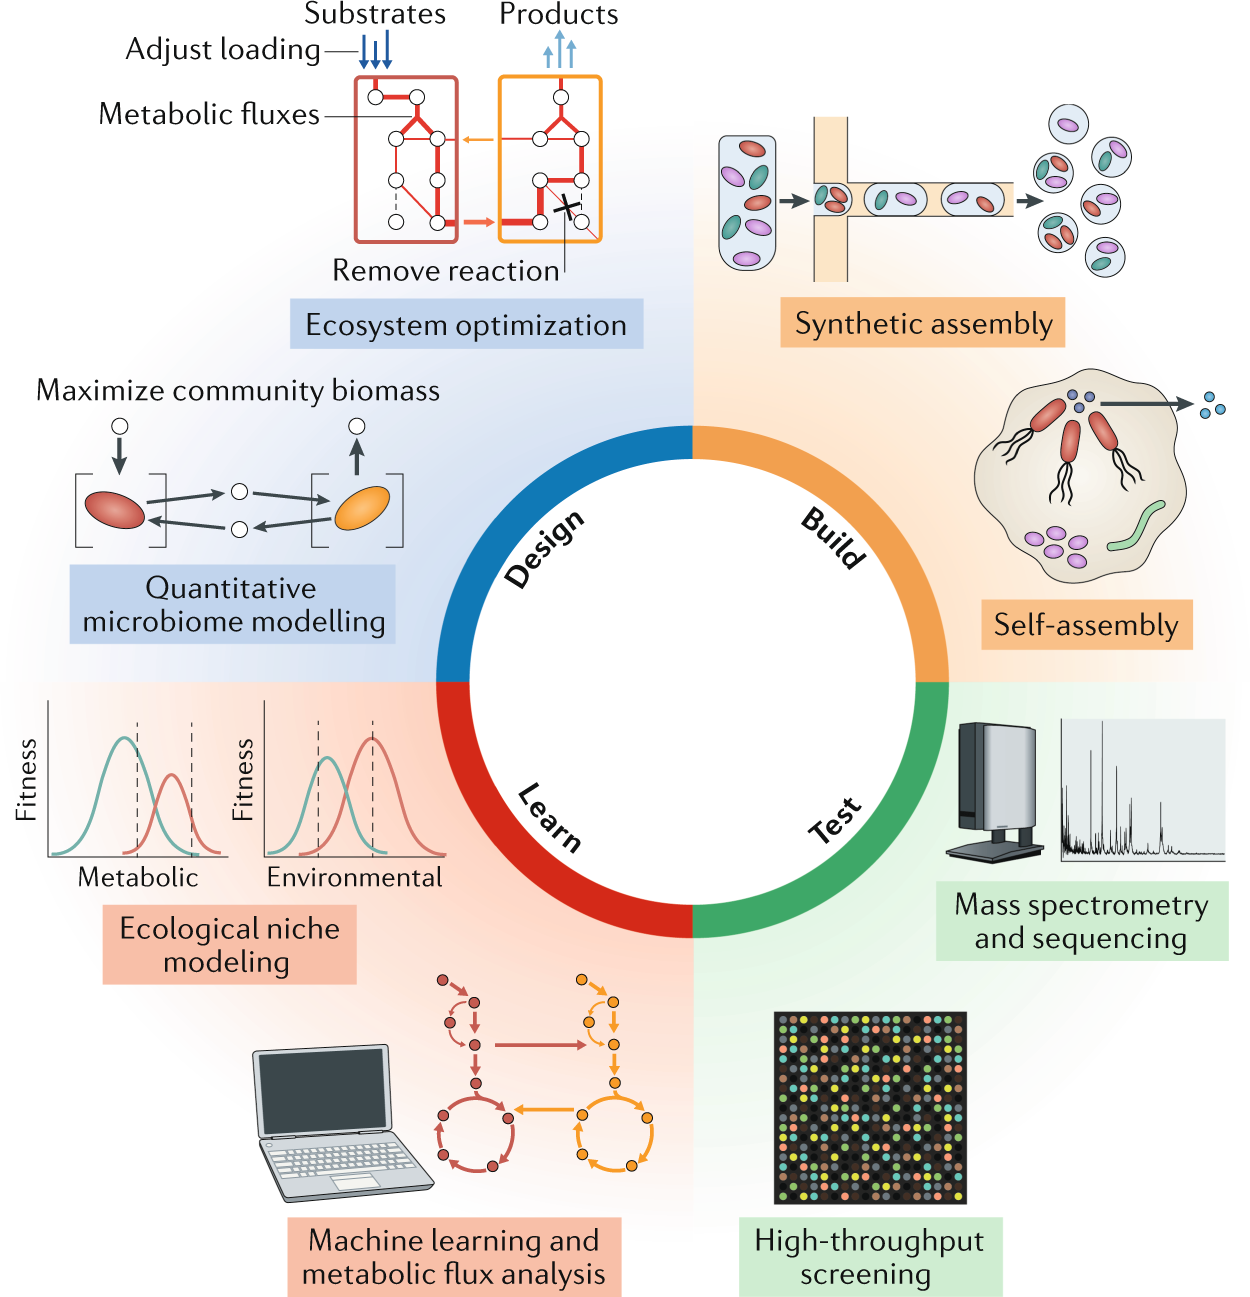 Common principles and best practices for engineering microbiomes